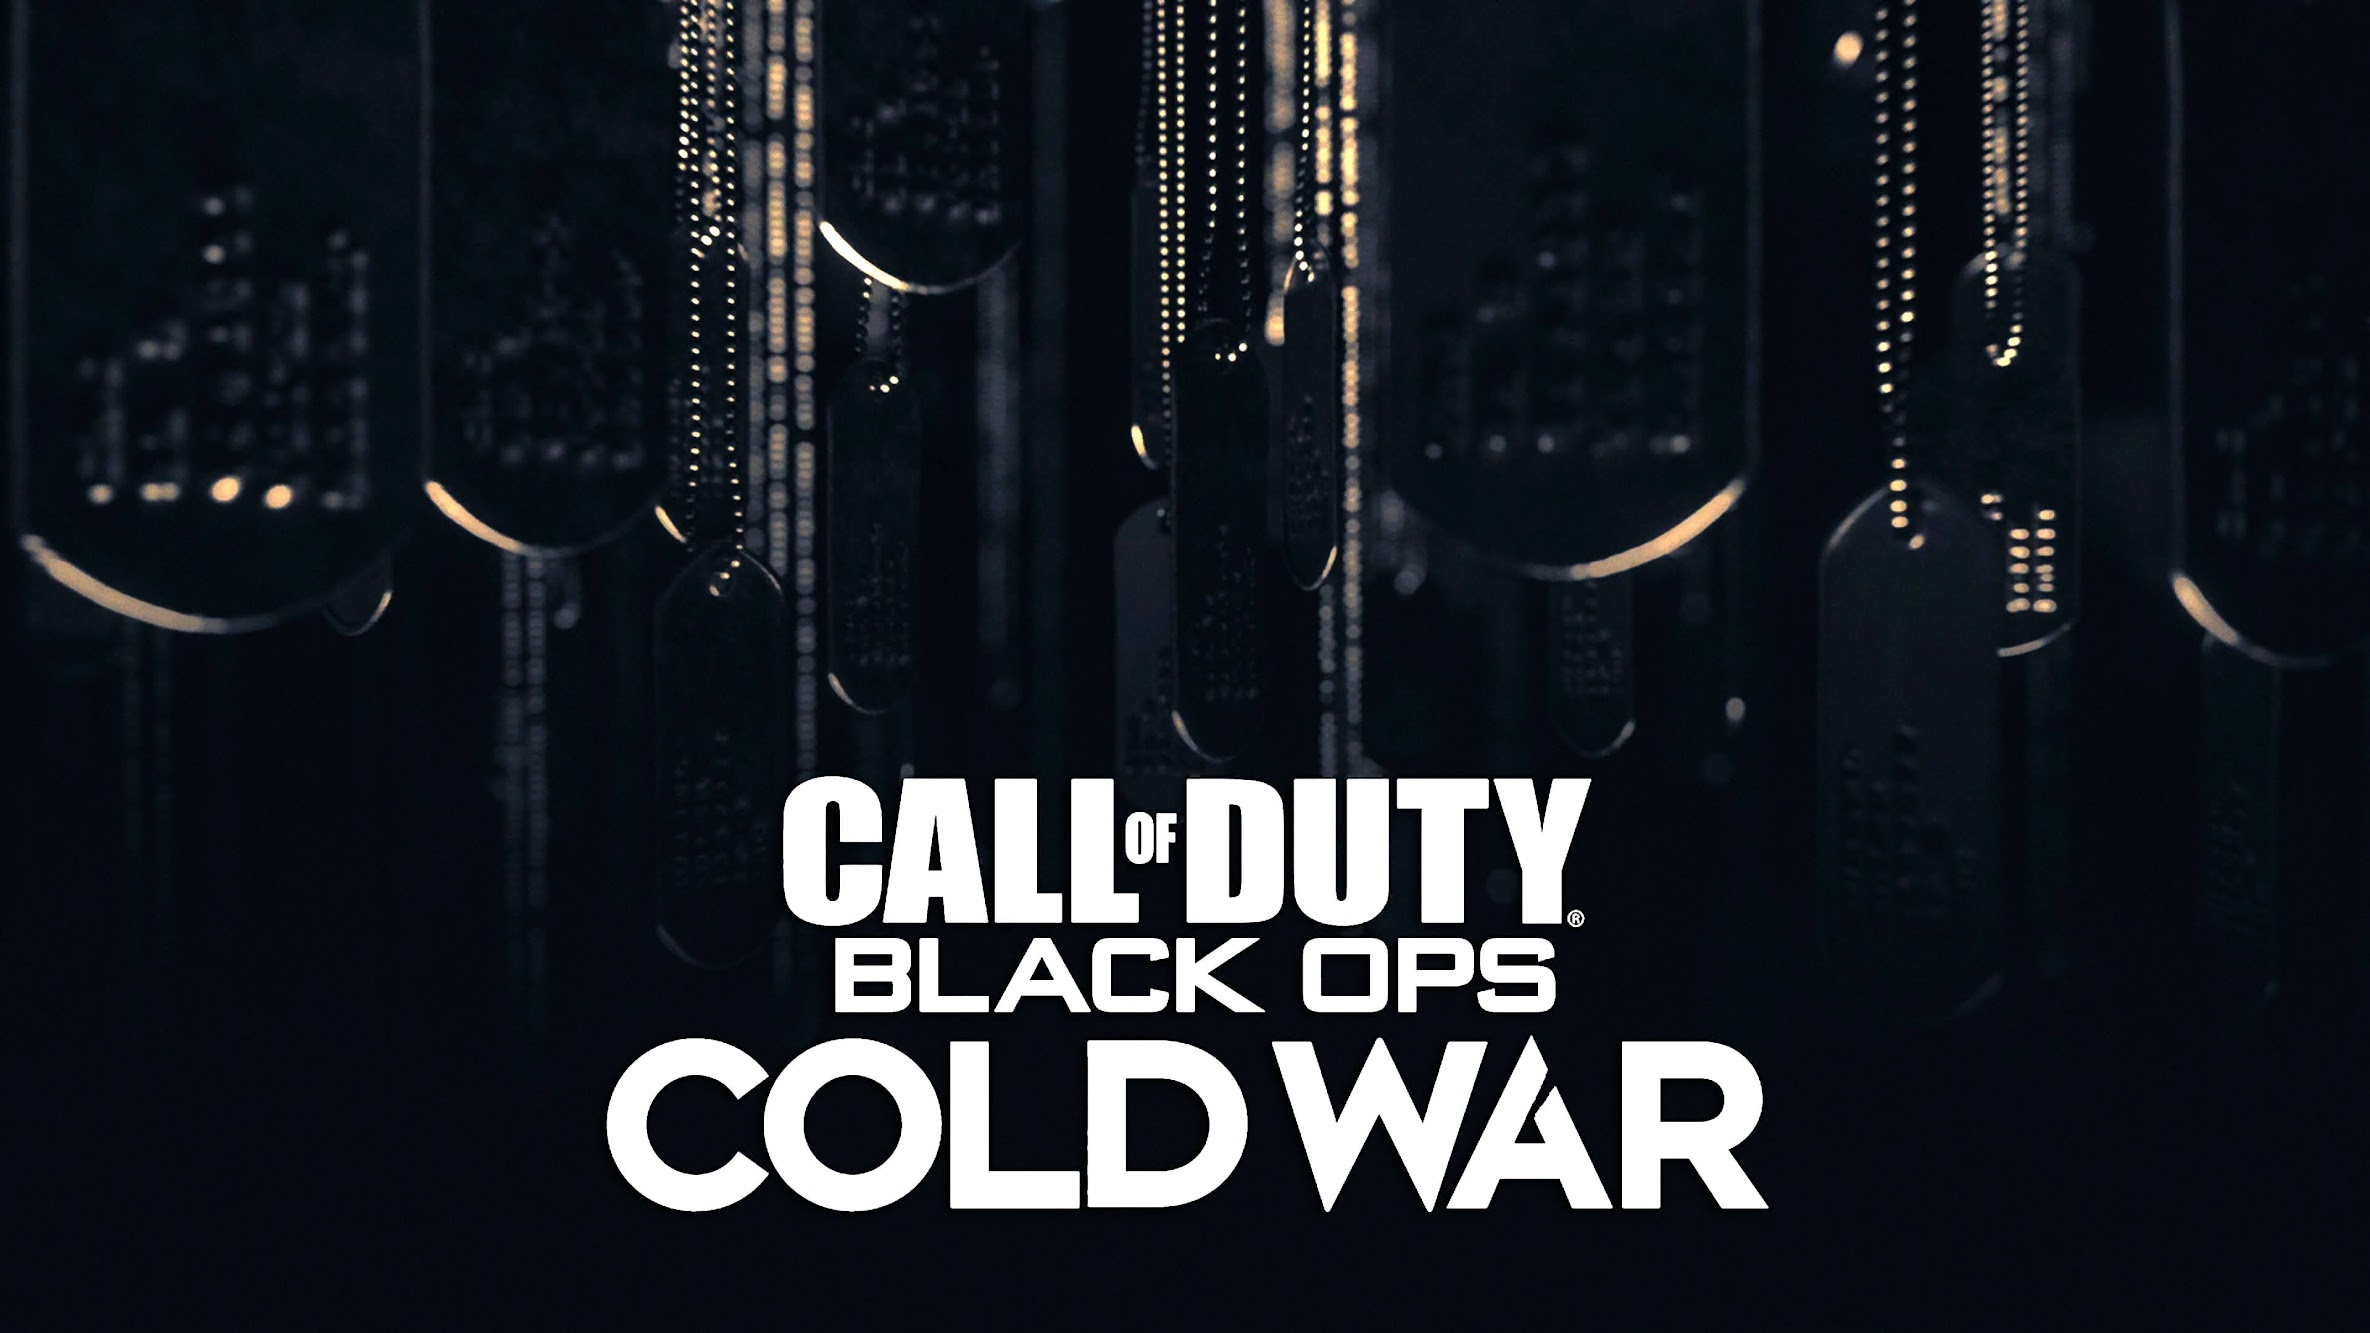 PS5 – Call of Duty : Black Ops – Cold War #18 プレステージ1 Lv18まで